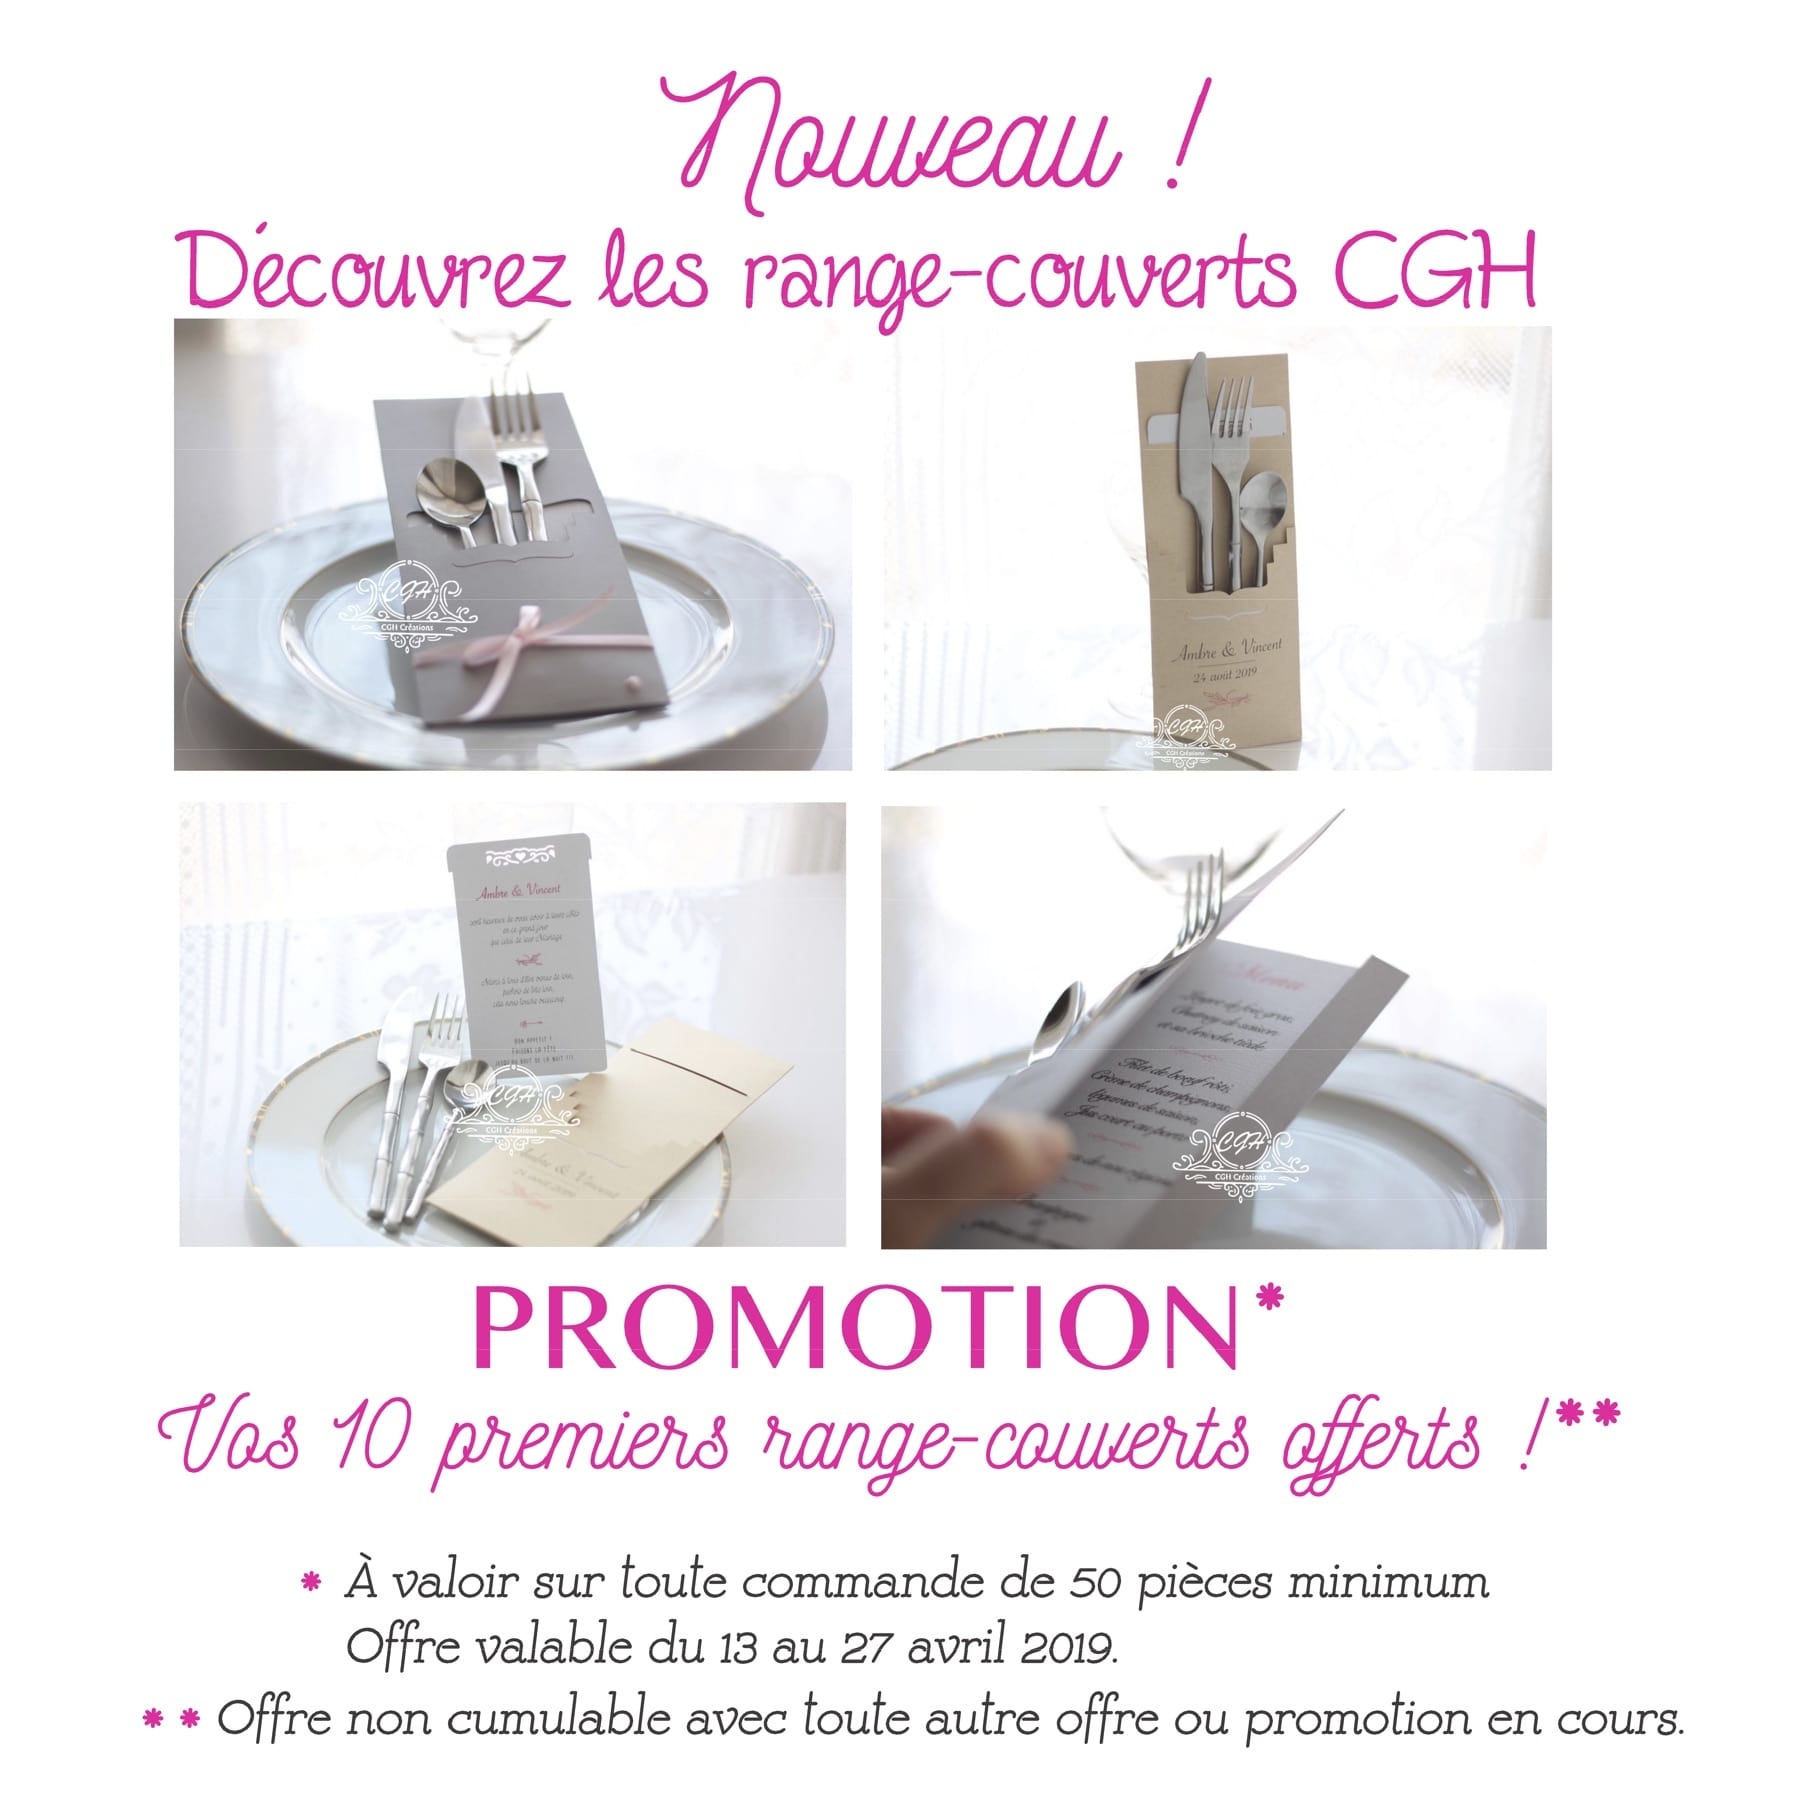 Cgh promotion range couverts avril 2019 min